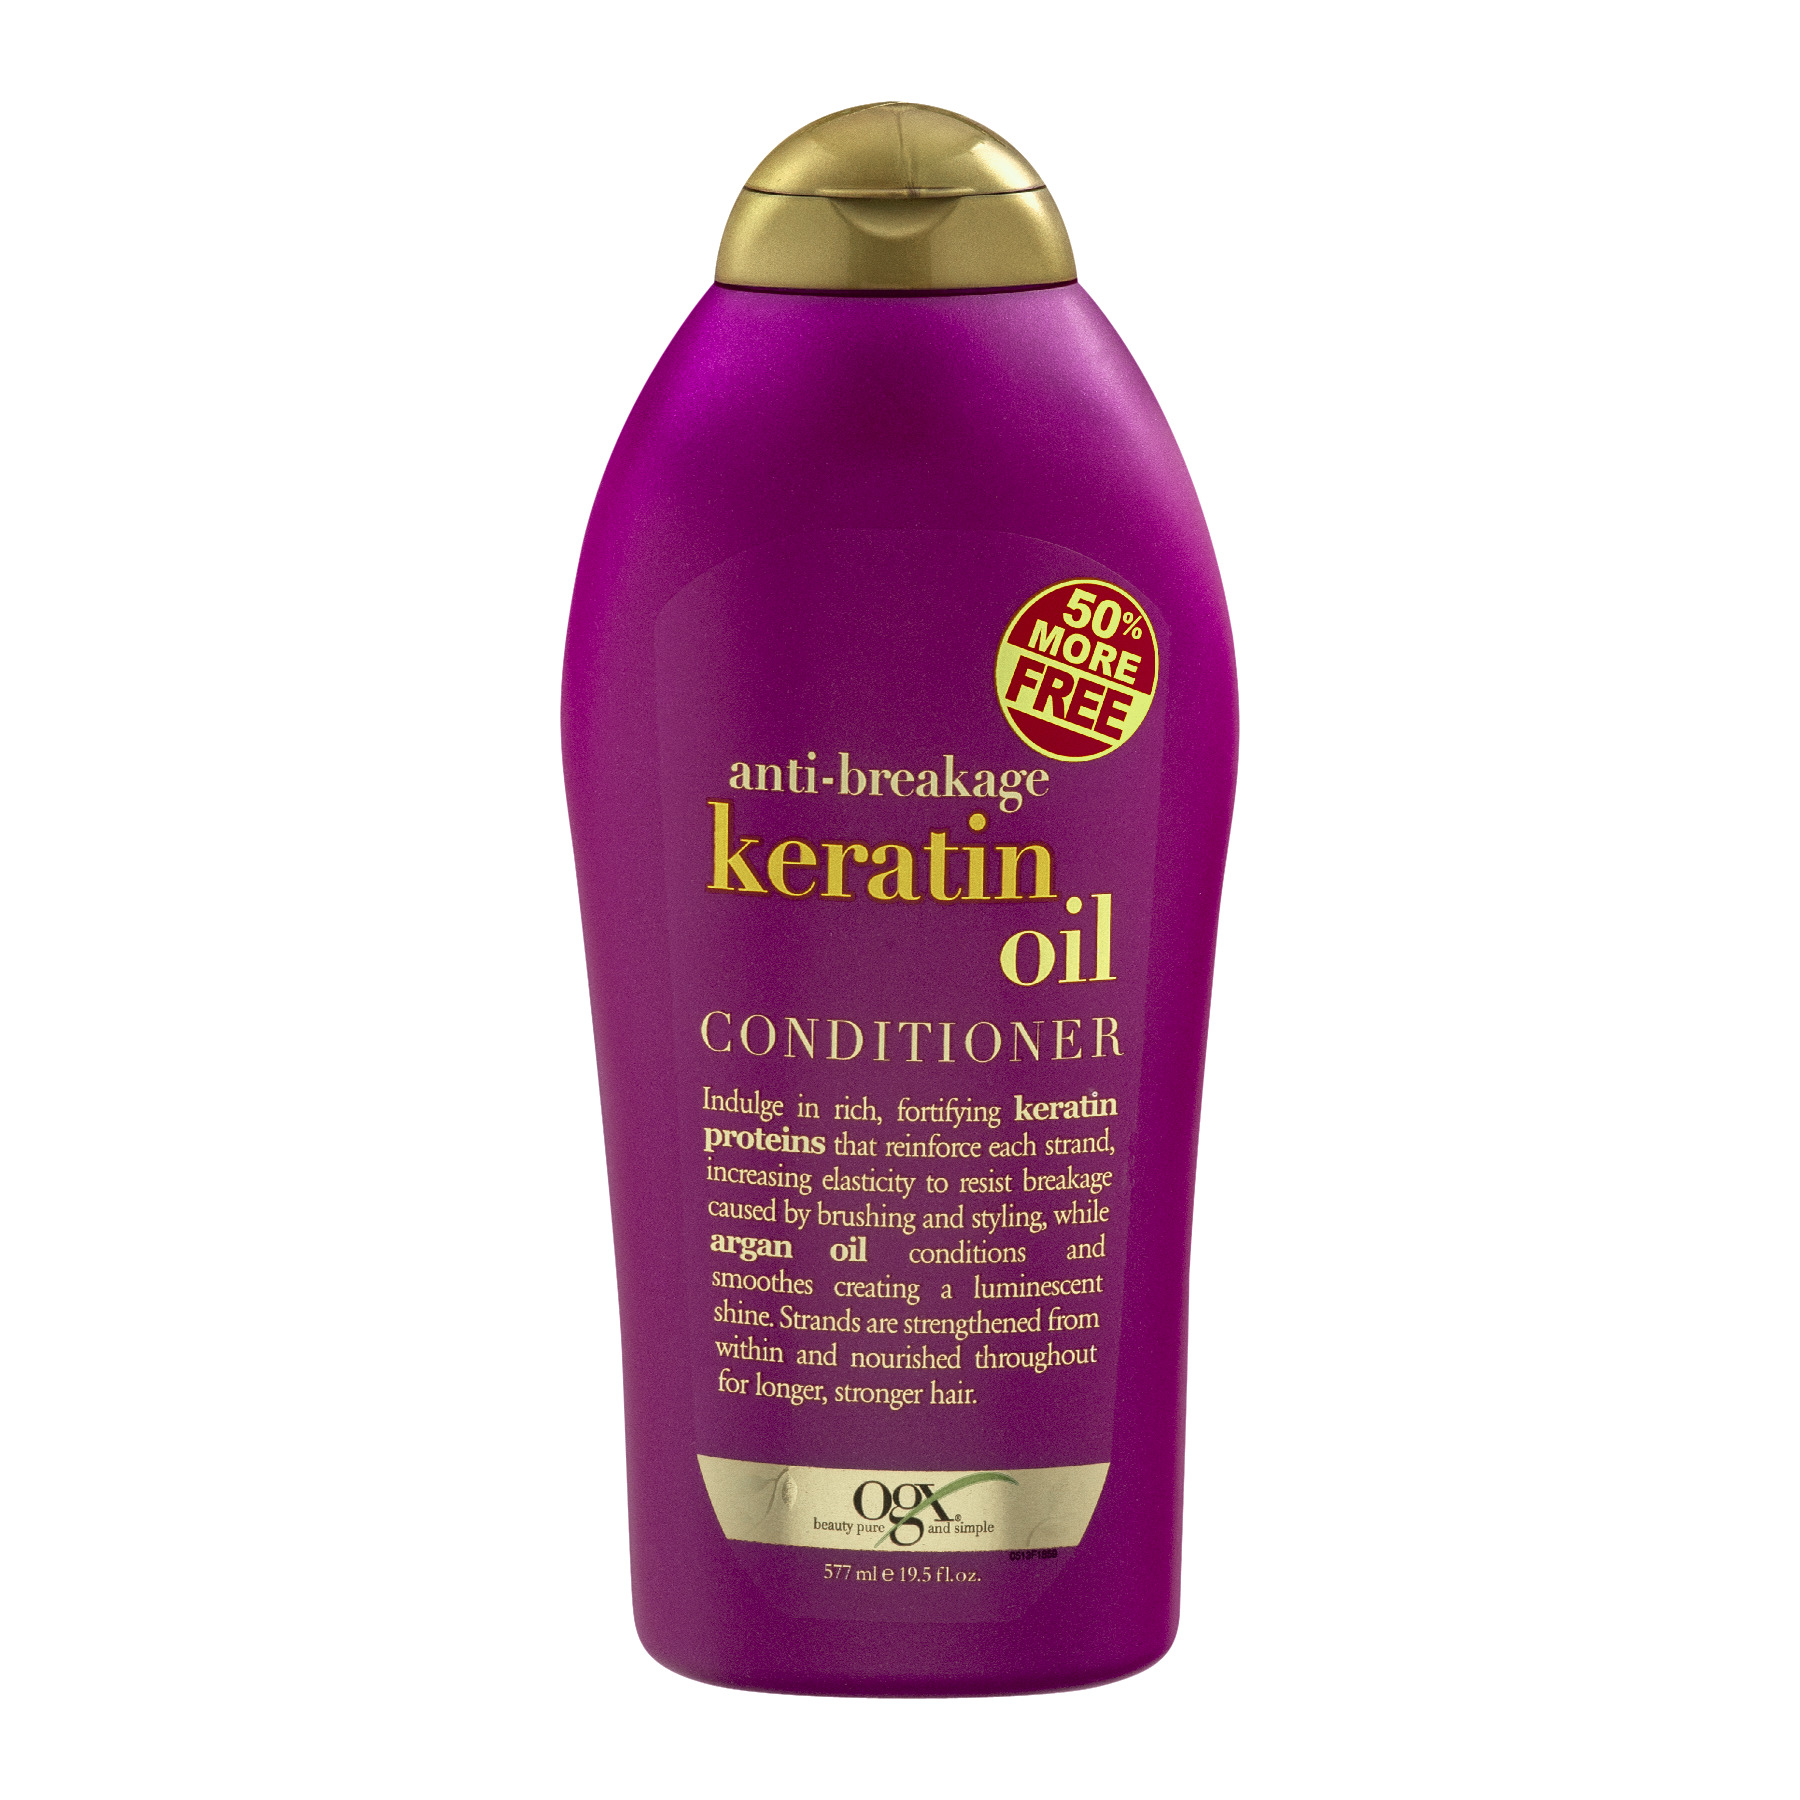 OGX Anti-Breakage Keratin Oil Conditioner, 19.5 FL OZ